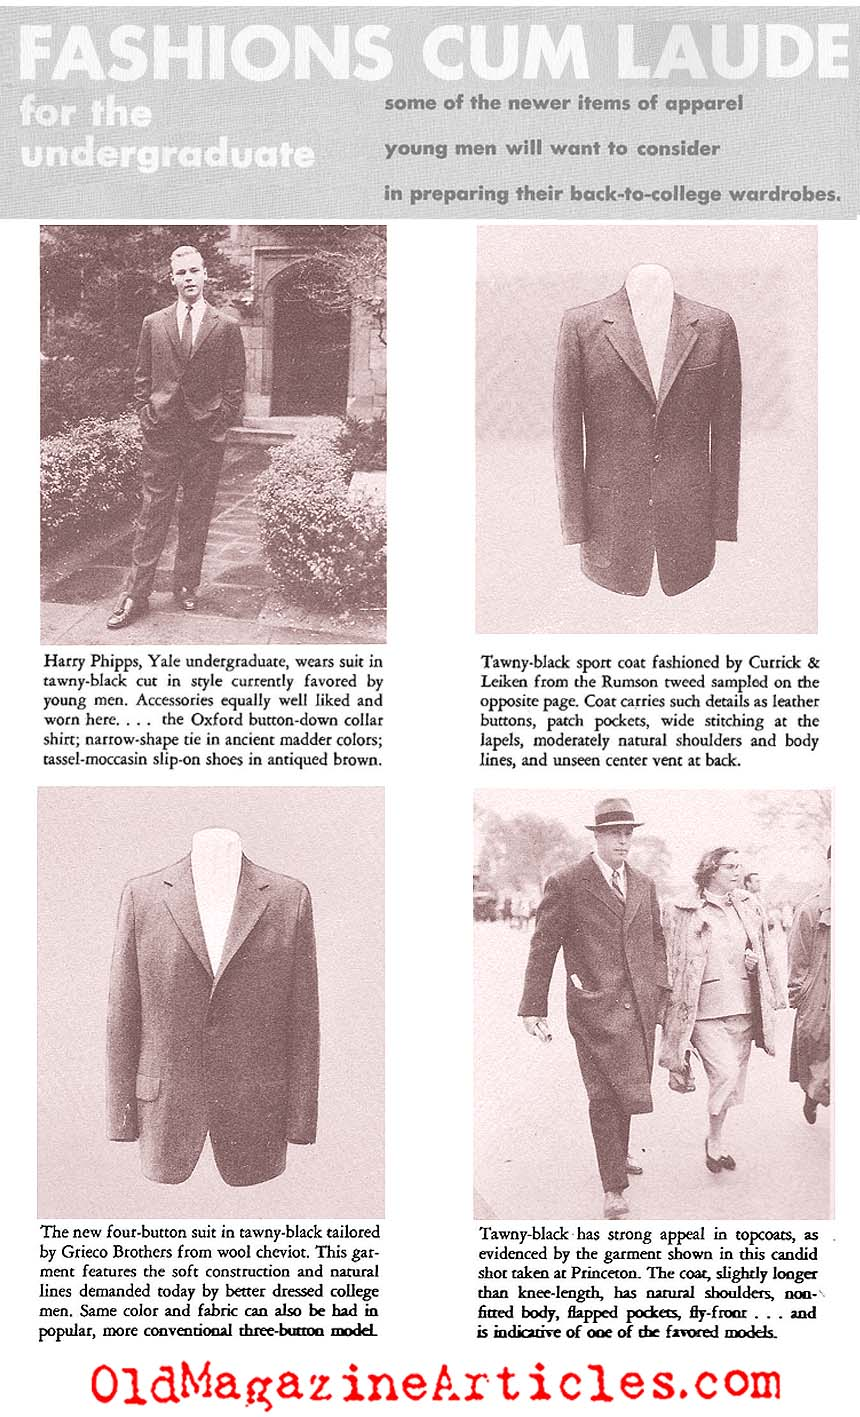 Ivy League College Fashions (Gentry Magazine, 1953) • Gentry Magazine, 1953 •